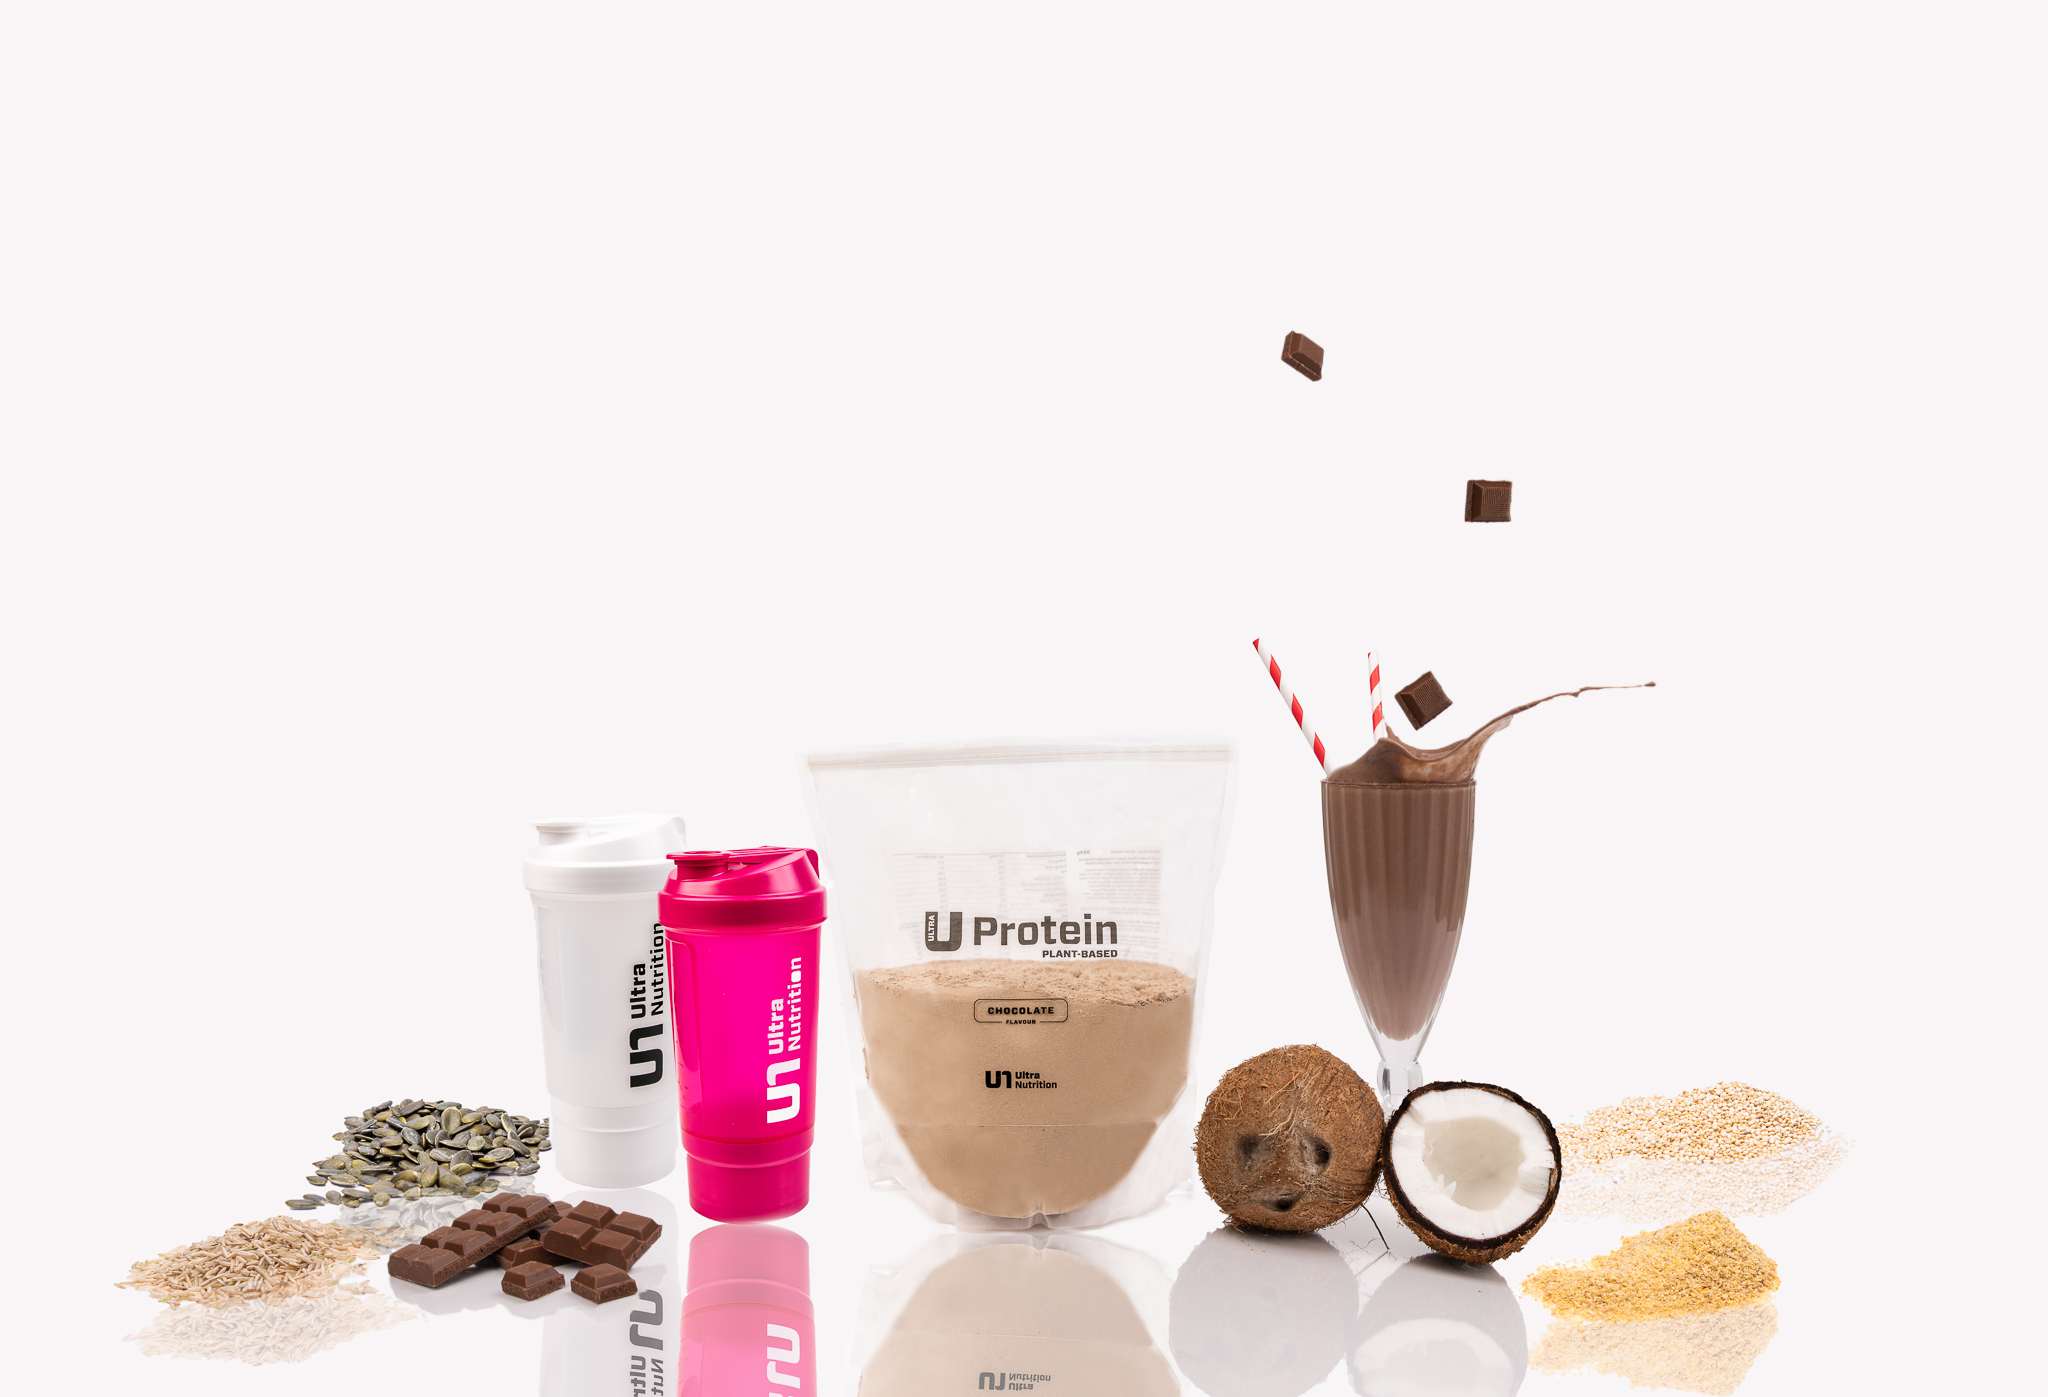 Ultra Protein Chocolate plant based with